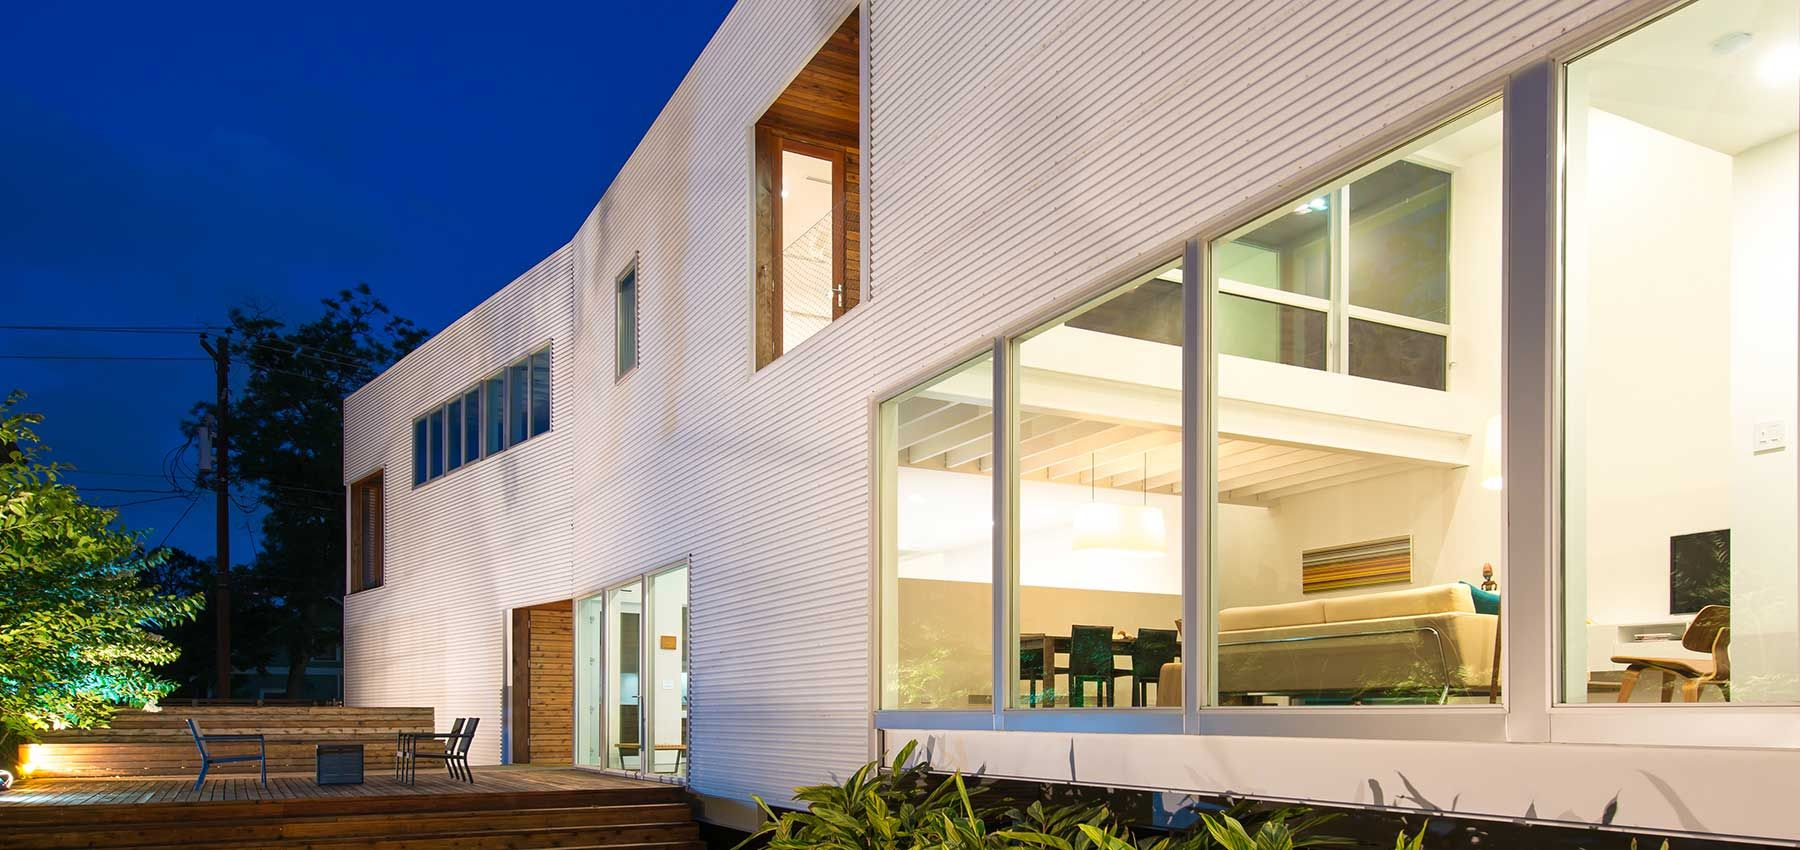 perforated house at night